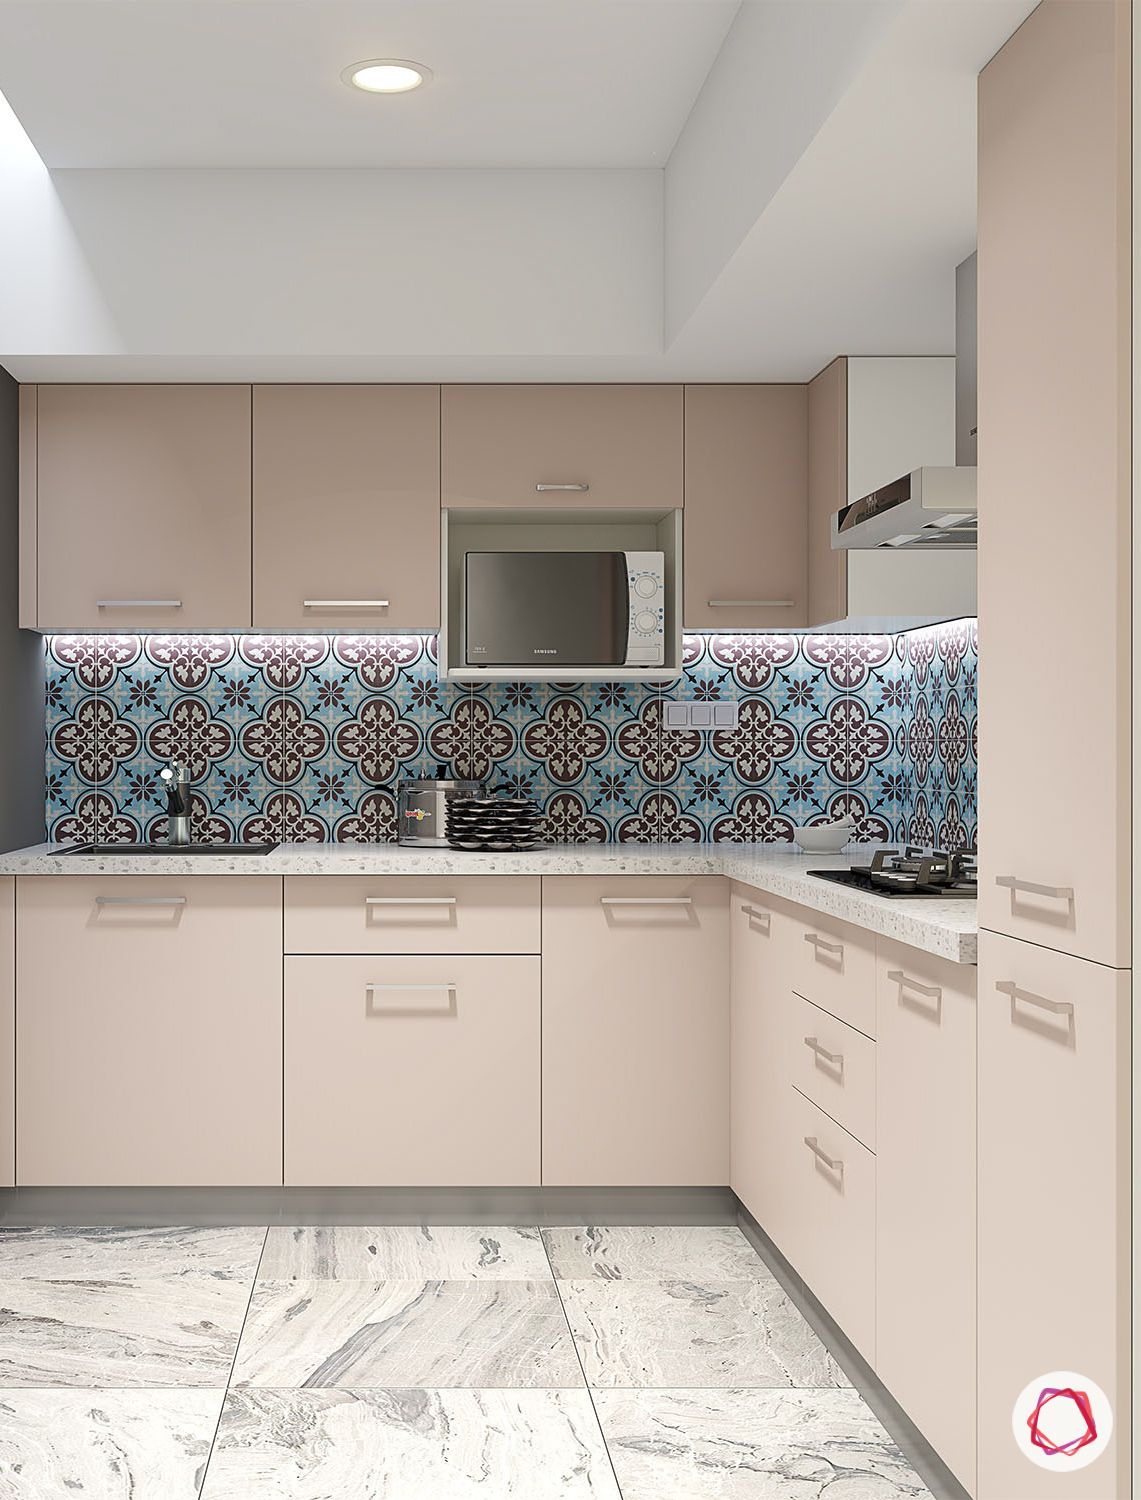 Pastel Modular Kitchen In India Loving This Trend Pastels Interiors Modularkitchen Kitchendesig Kitchen Tiles Design Home Tiles Design Floor Tile Design